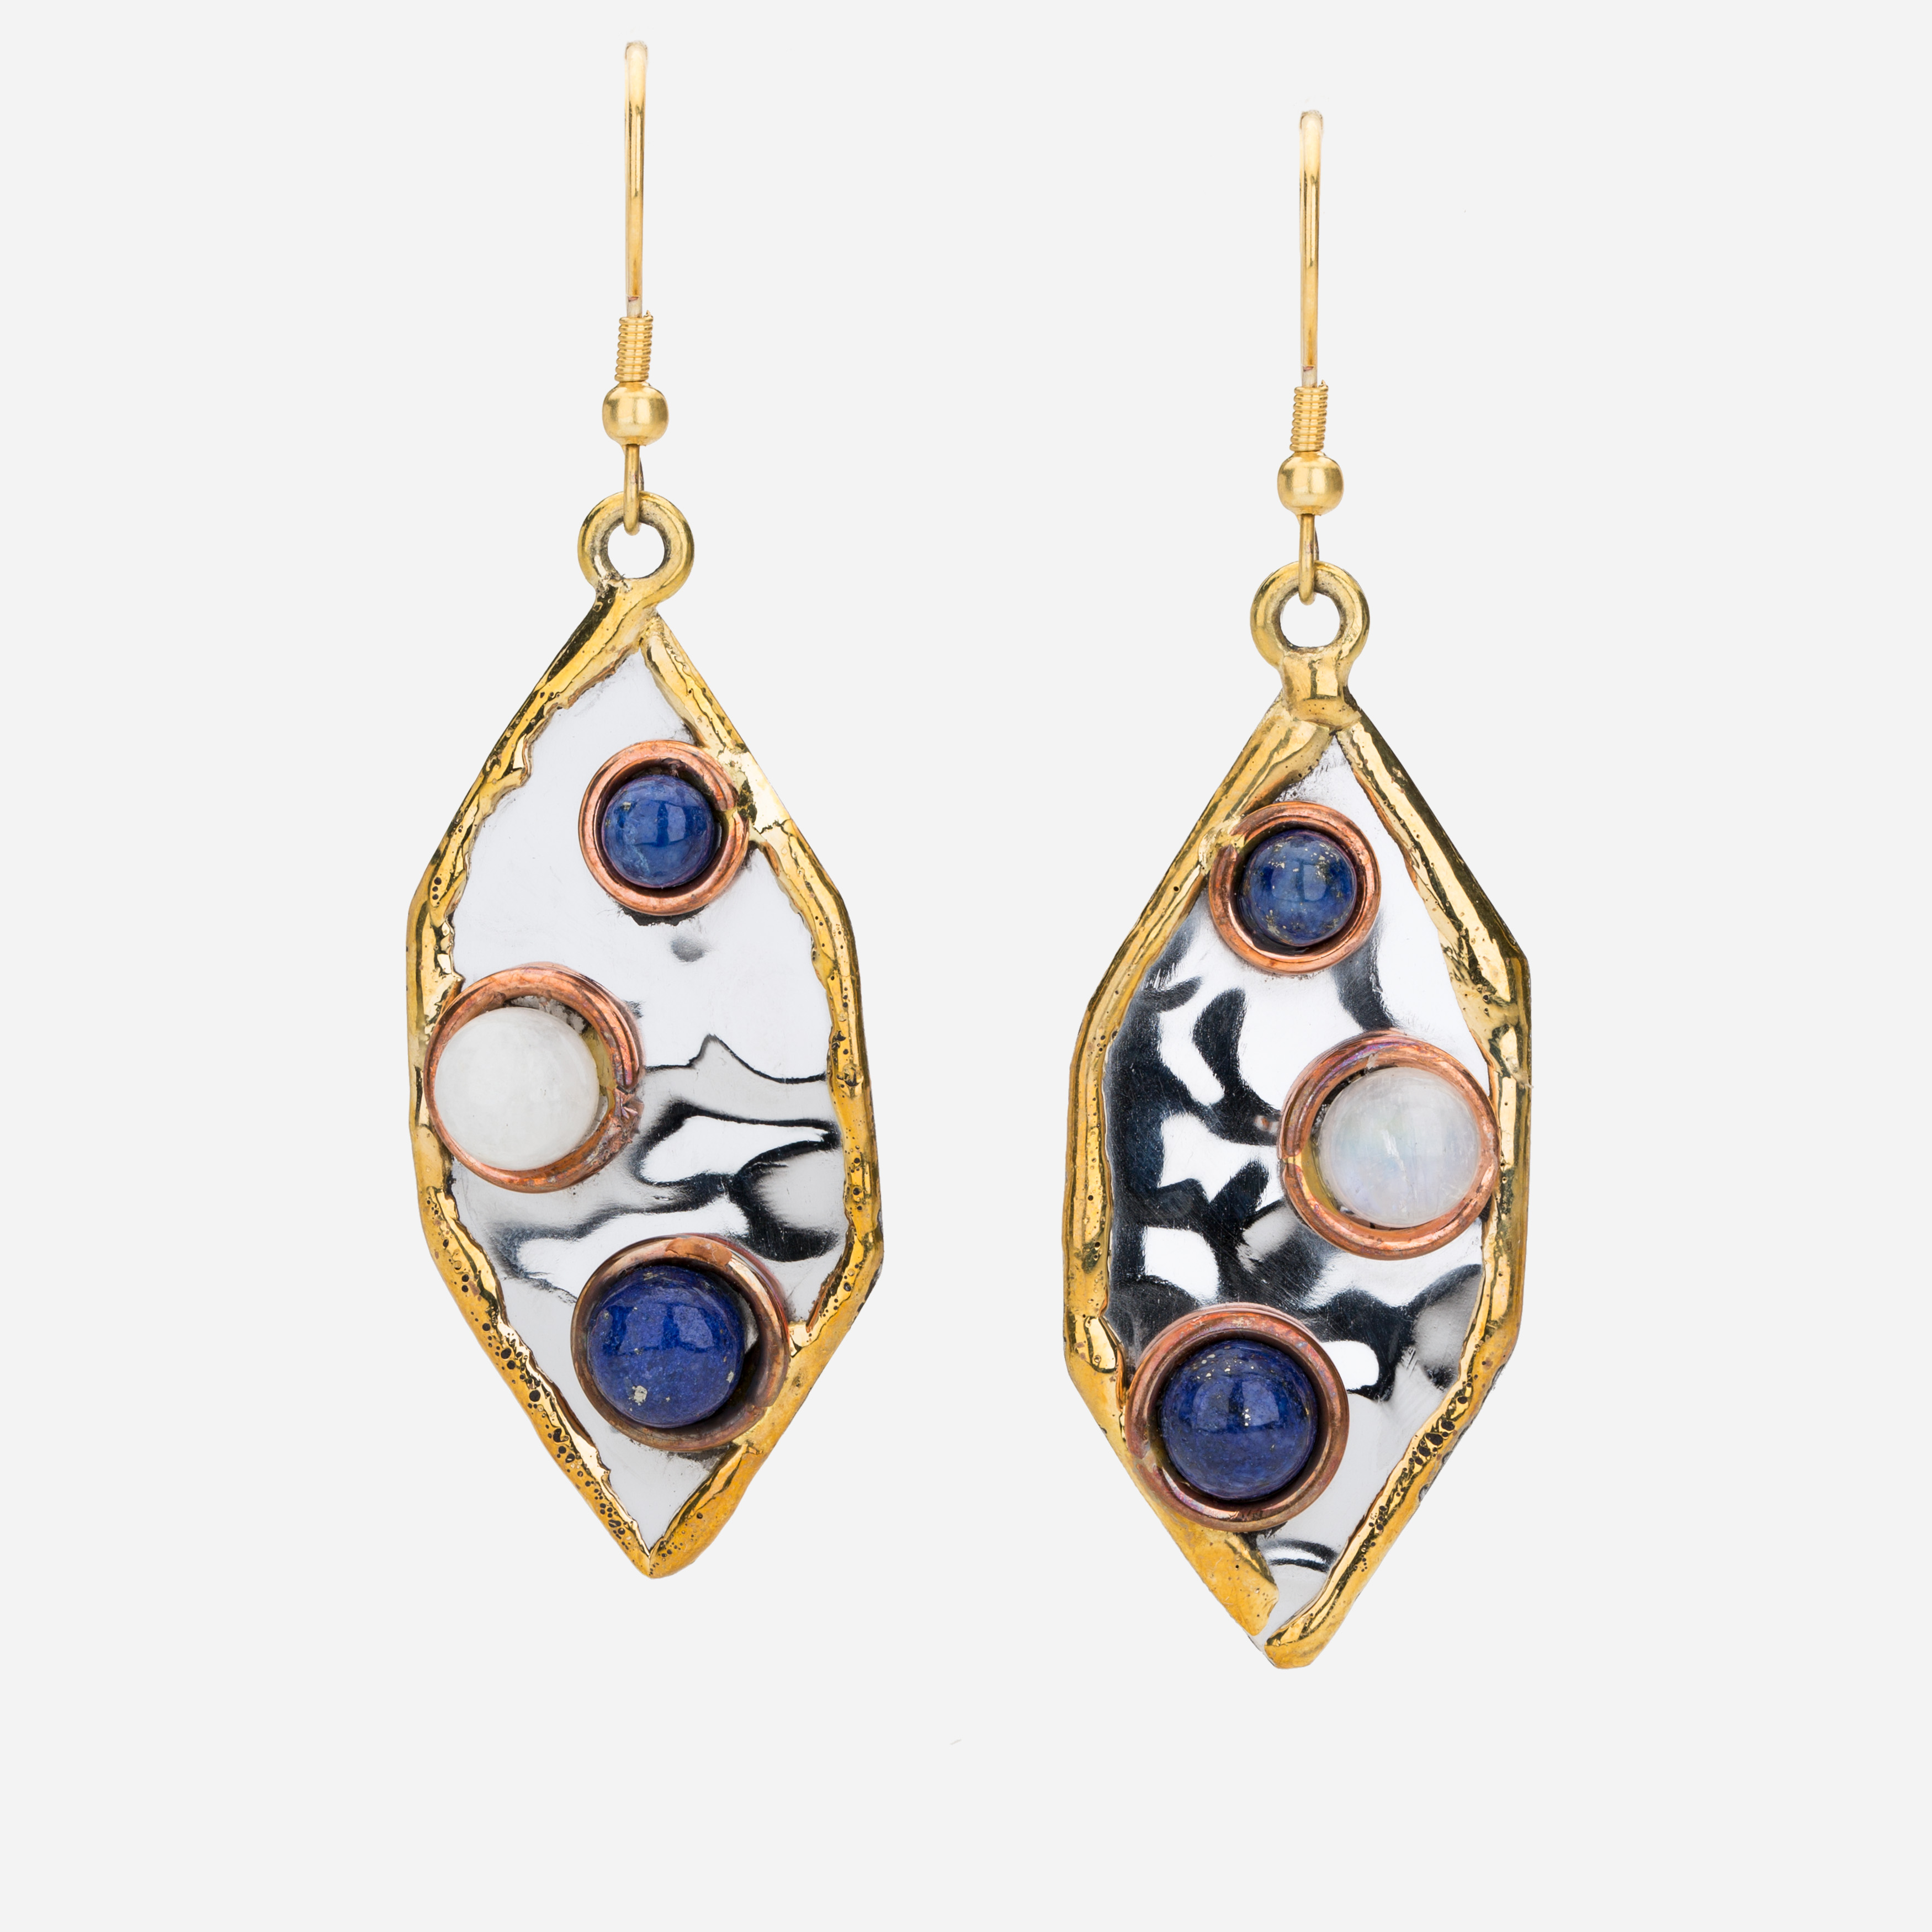 Tara Mesa Lapis and Rainbow Moonstone Earrings Crafted in German Silver with an Accent of Brass and Copper